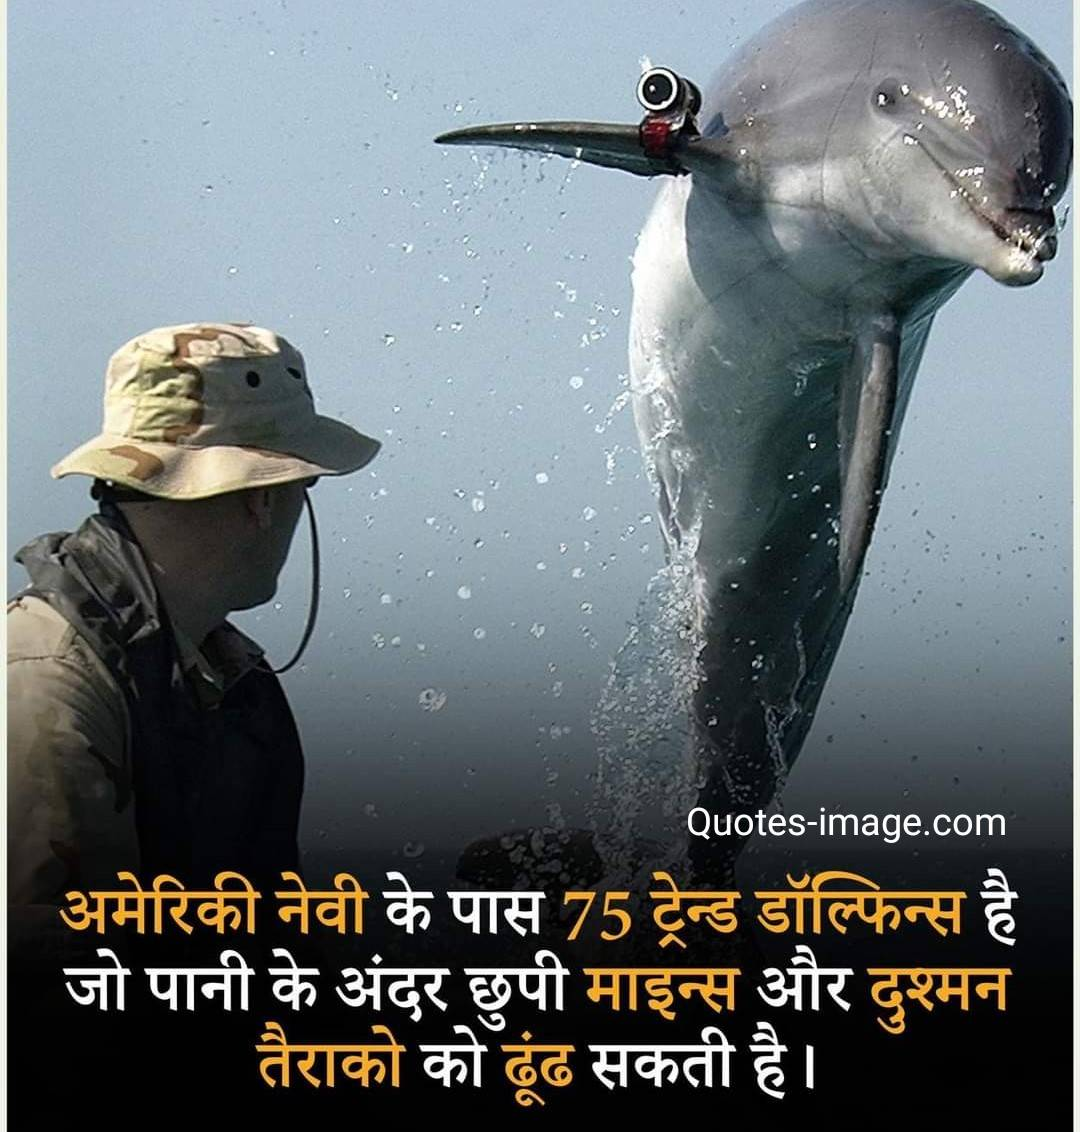 Facts About U S Navy | Facts About Dolphins | Facts About U S